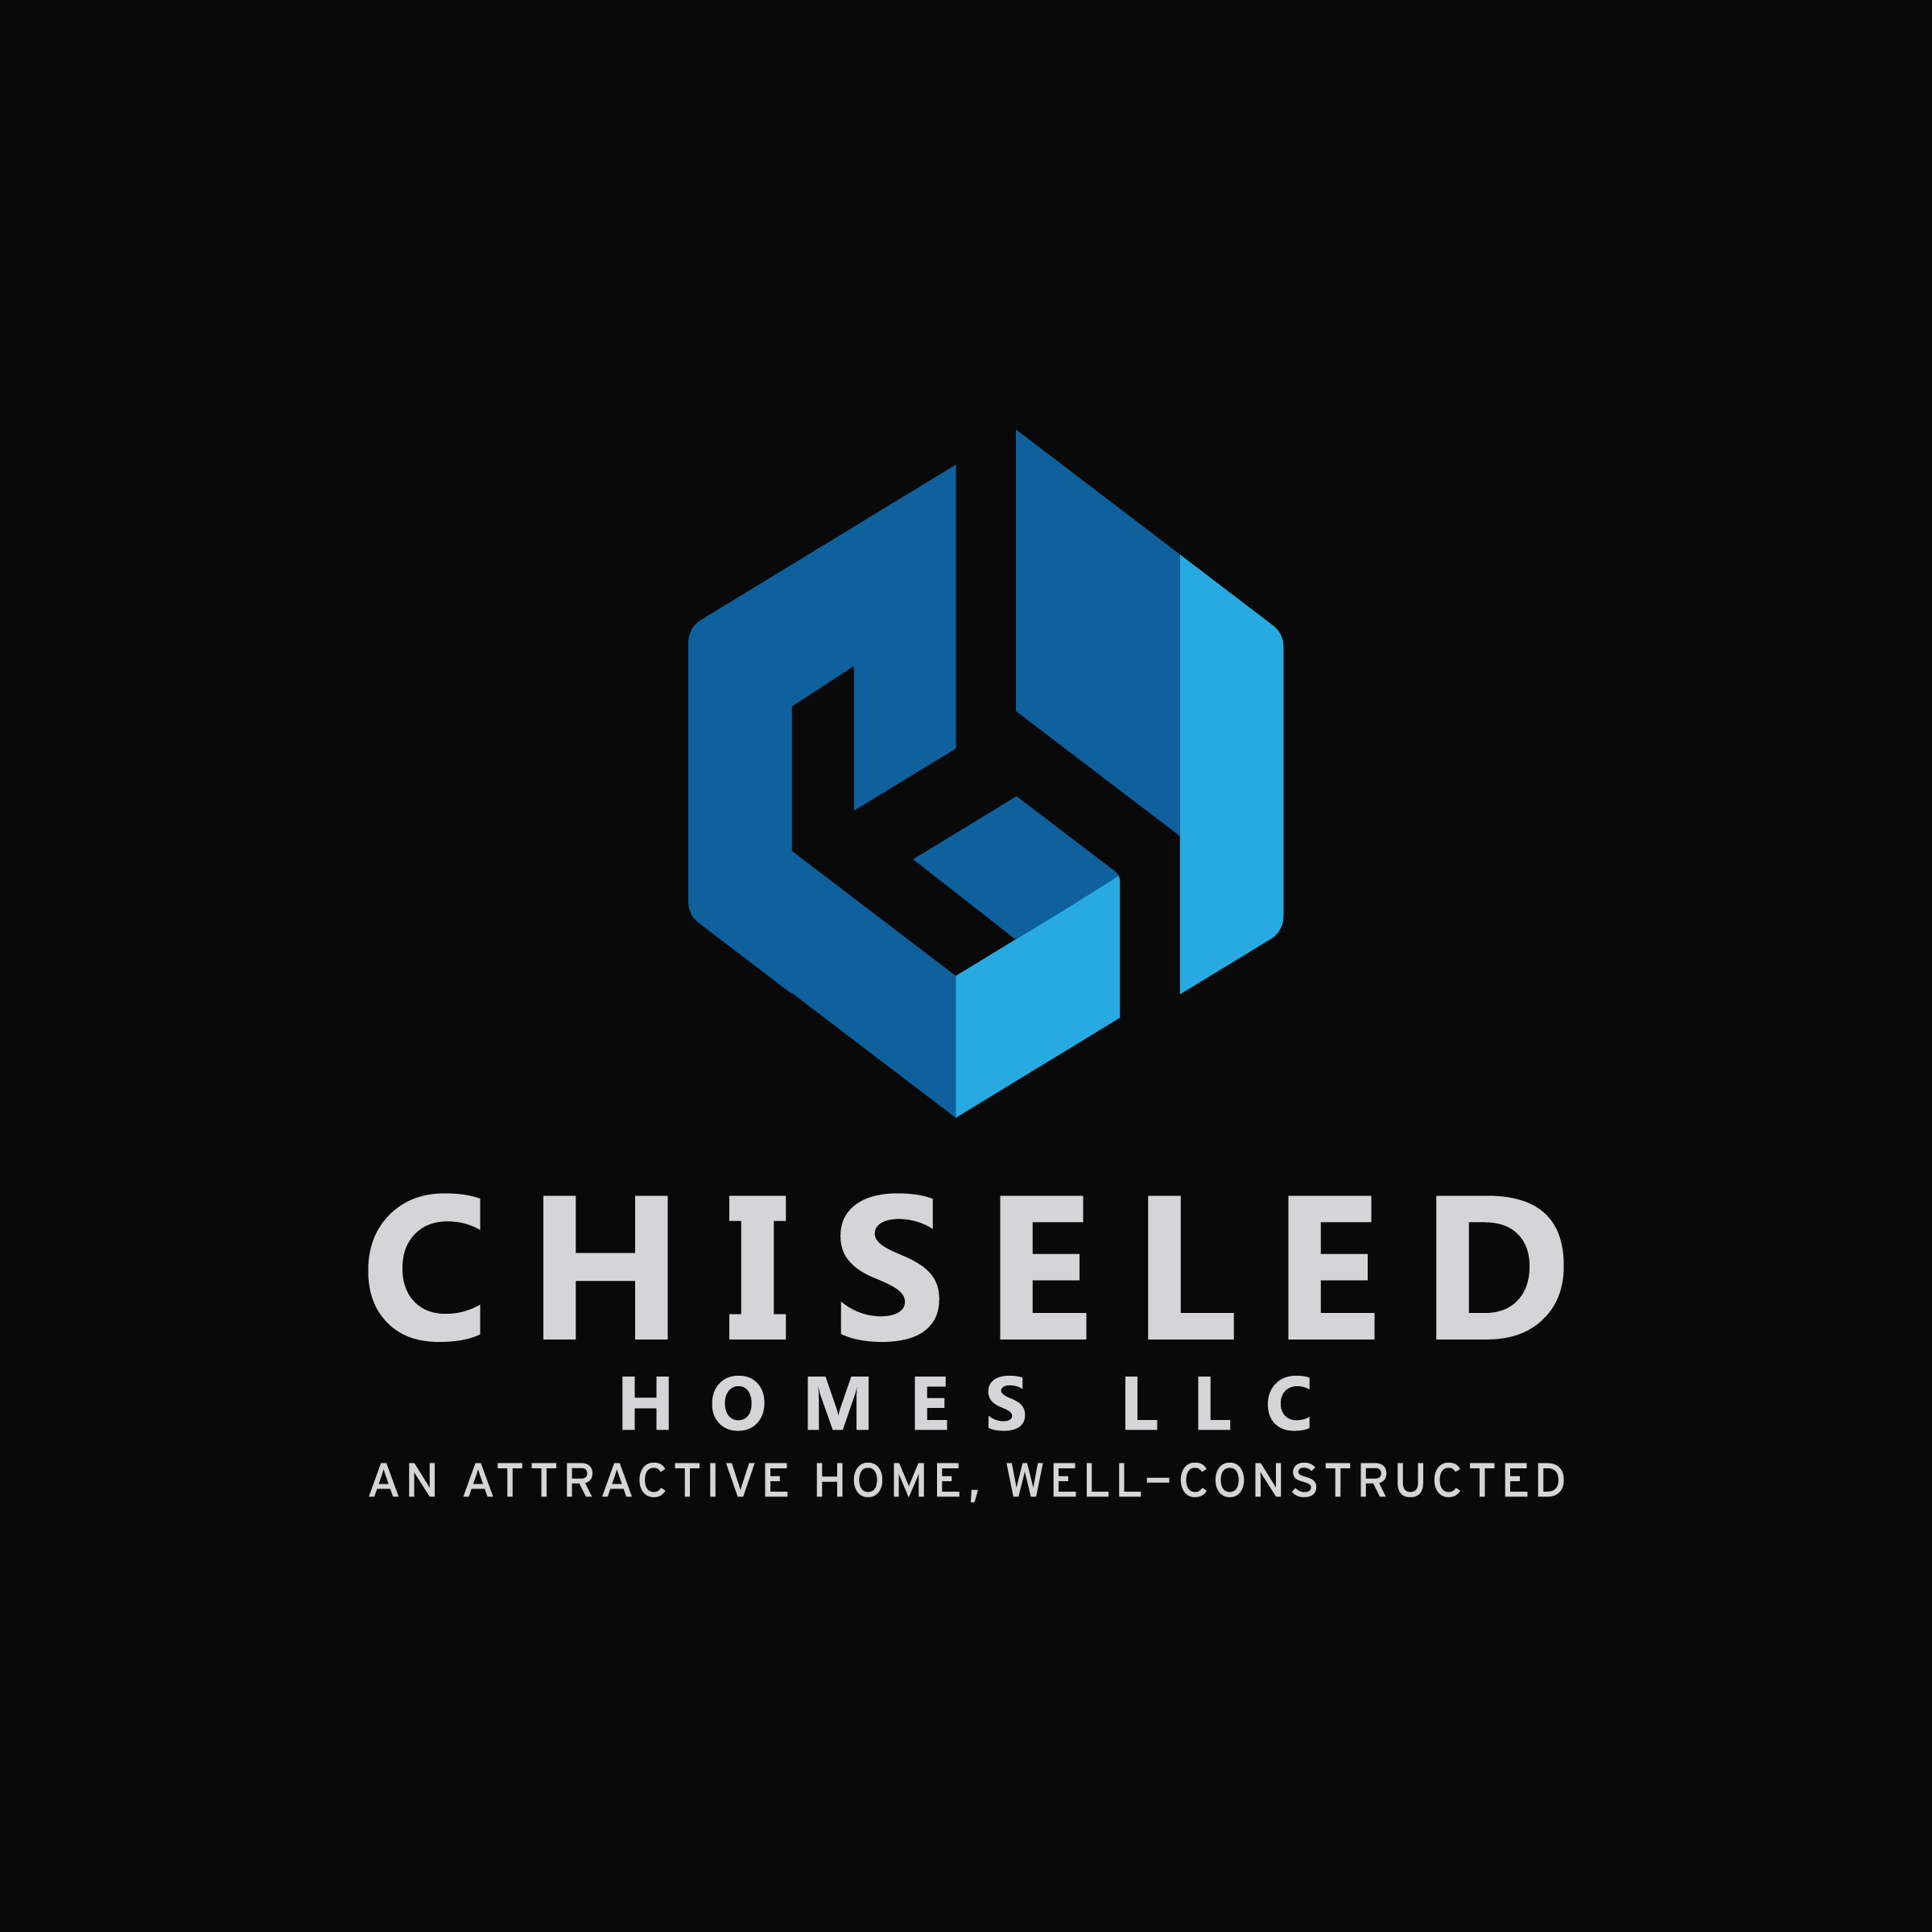 Create a great logo to attract first time and younger home buyers